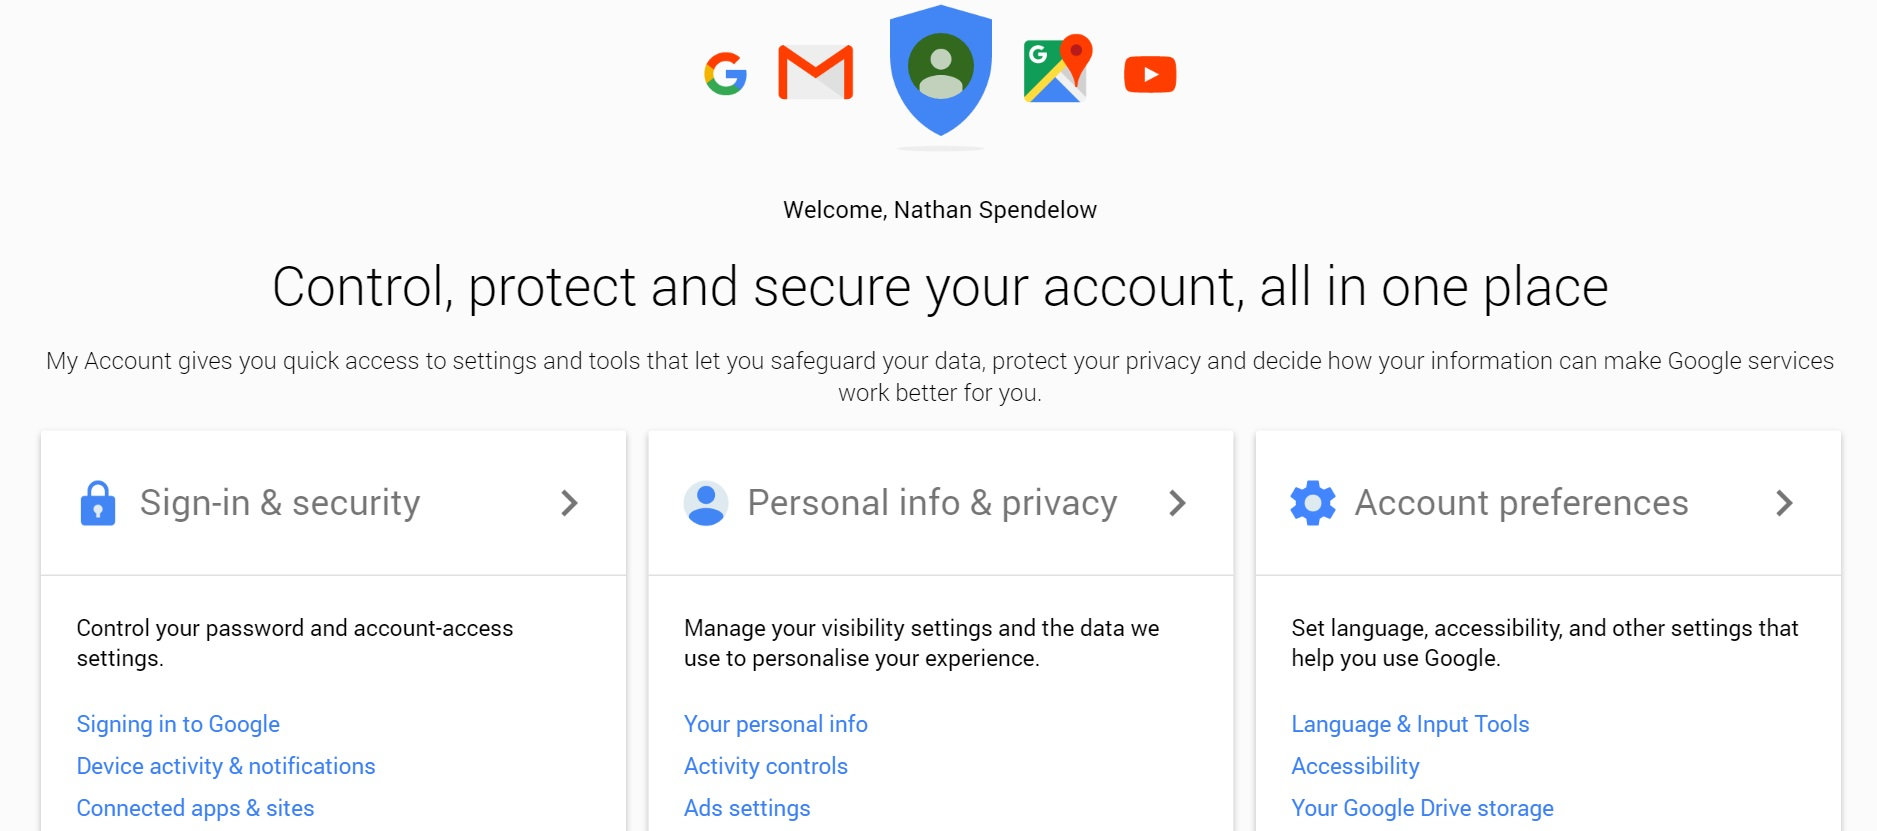 How to recover a hacked Gmail account | Expert Reviews